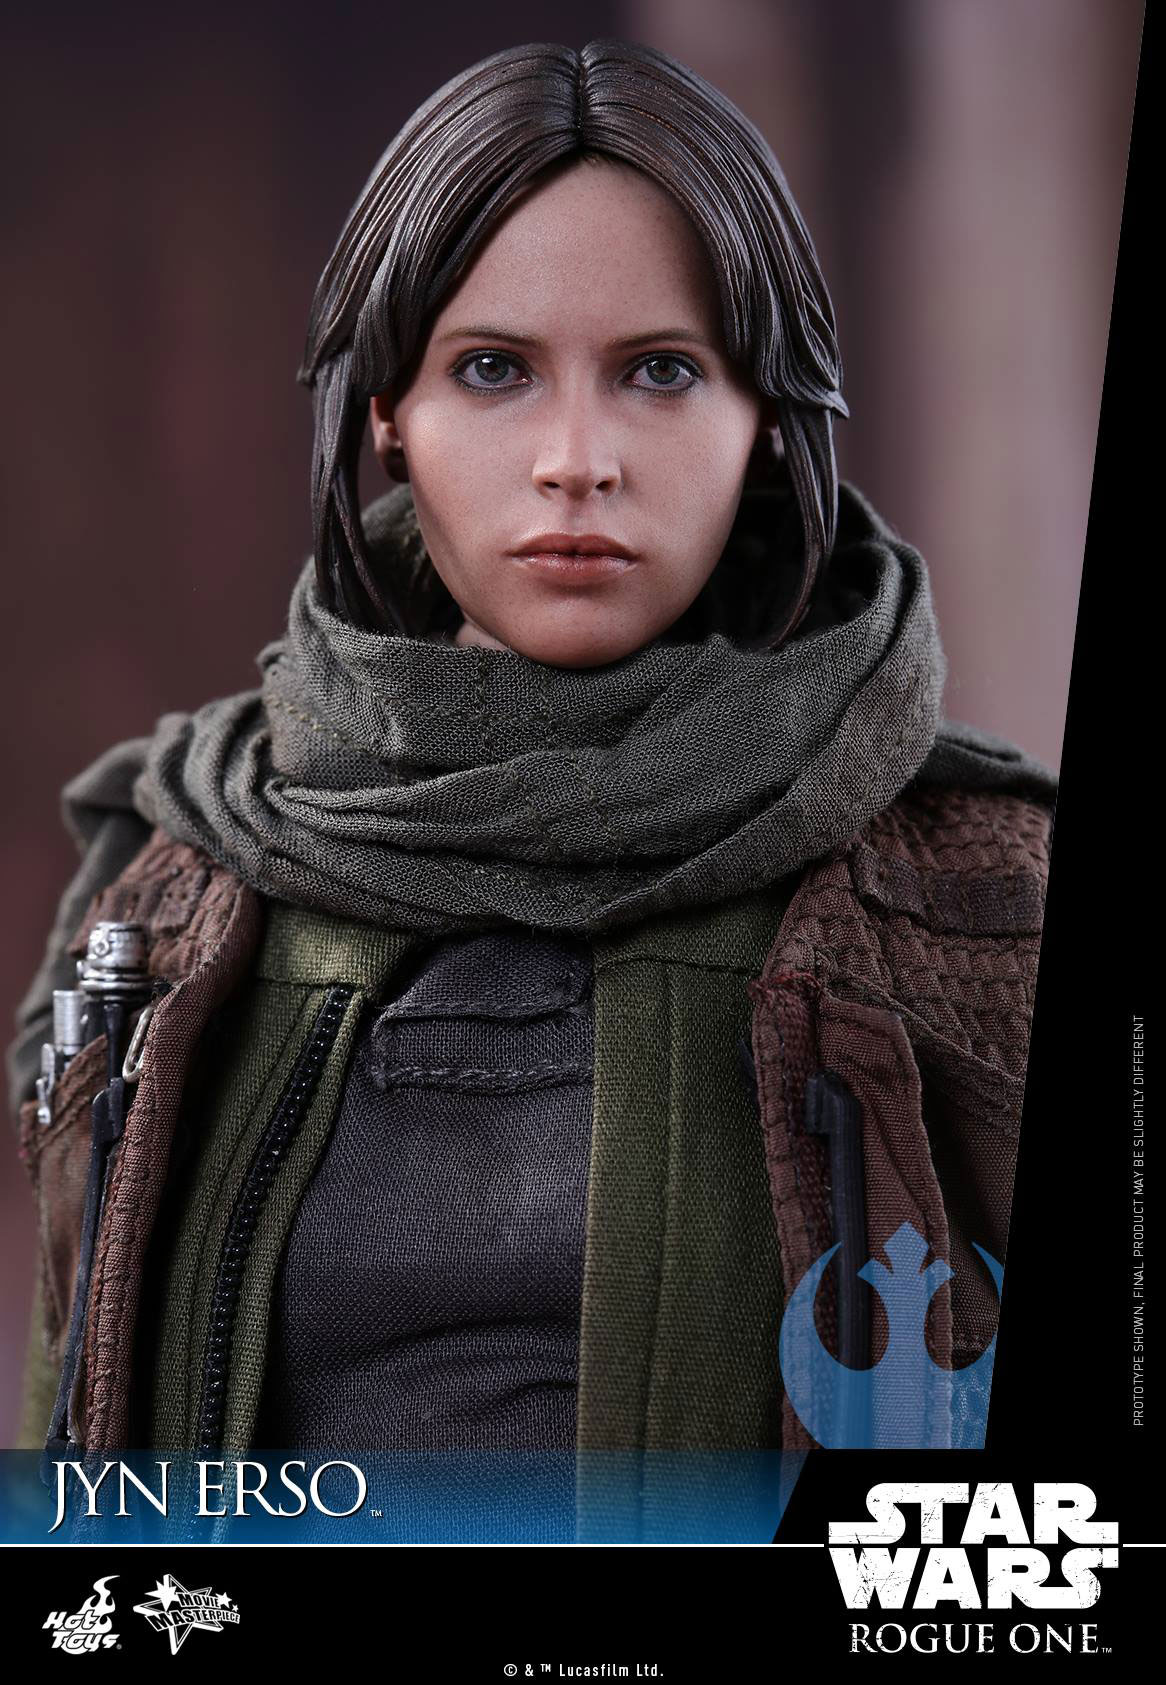 hot-toys-star-wars-rogue-one-jyn-erso-figure-7